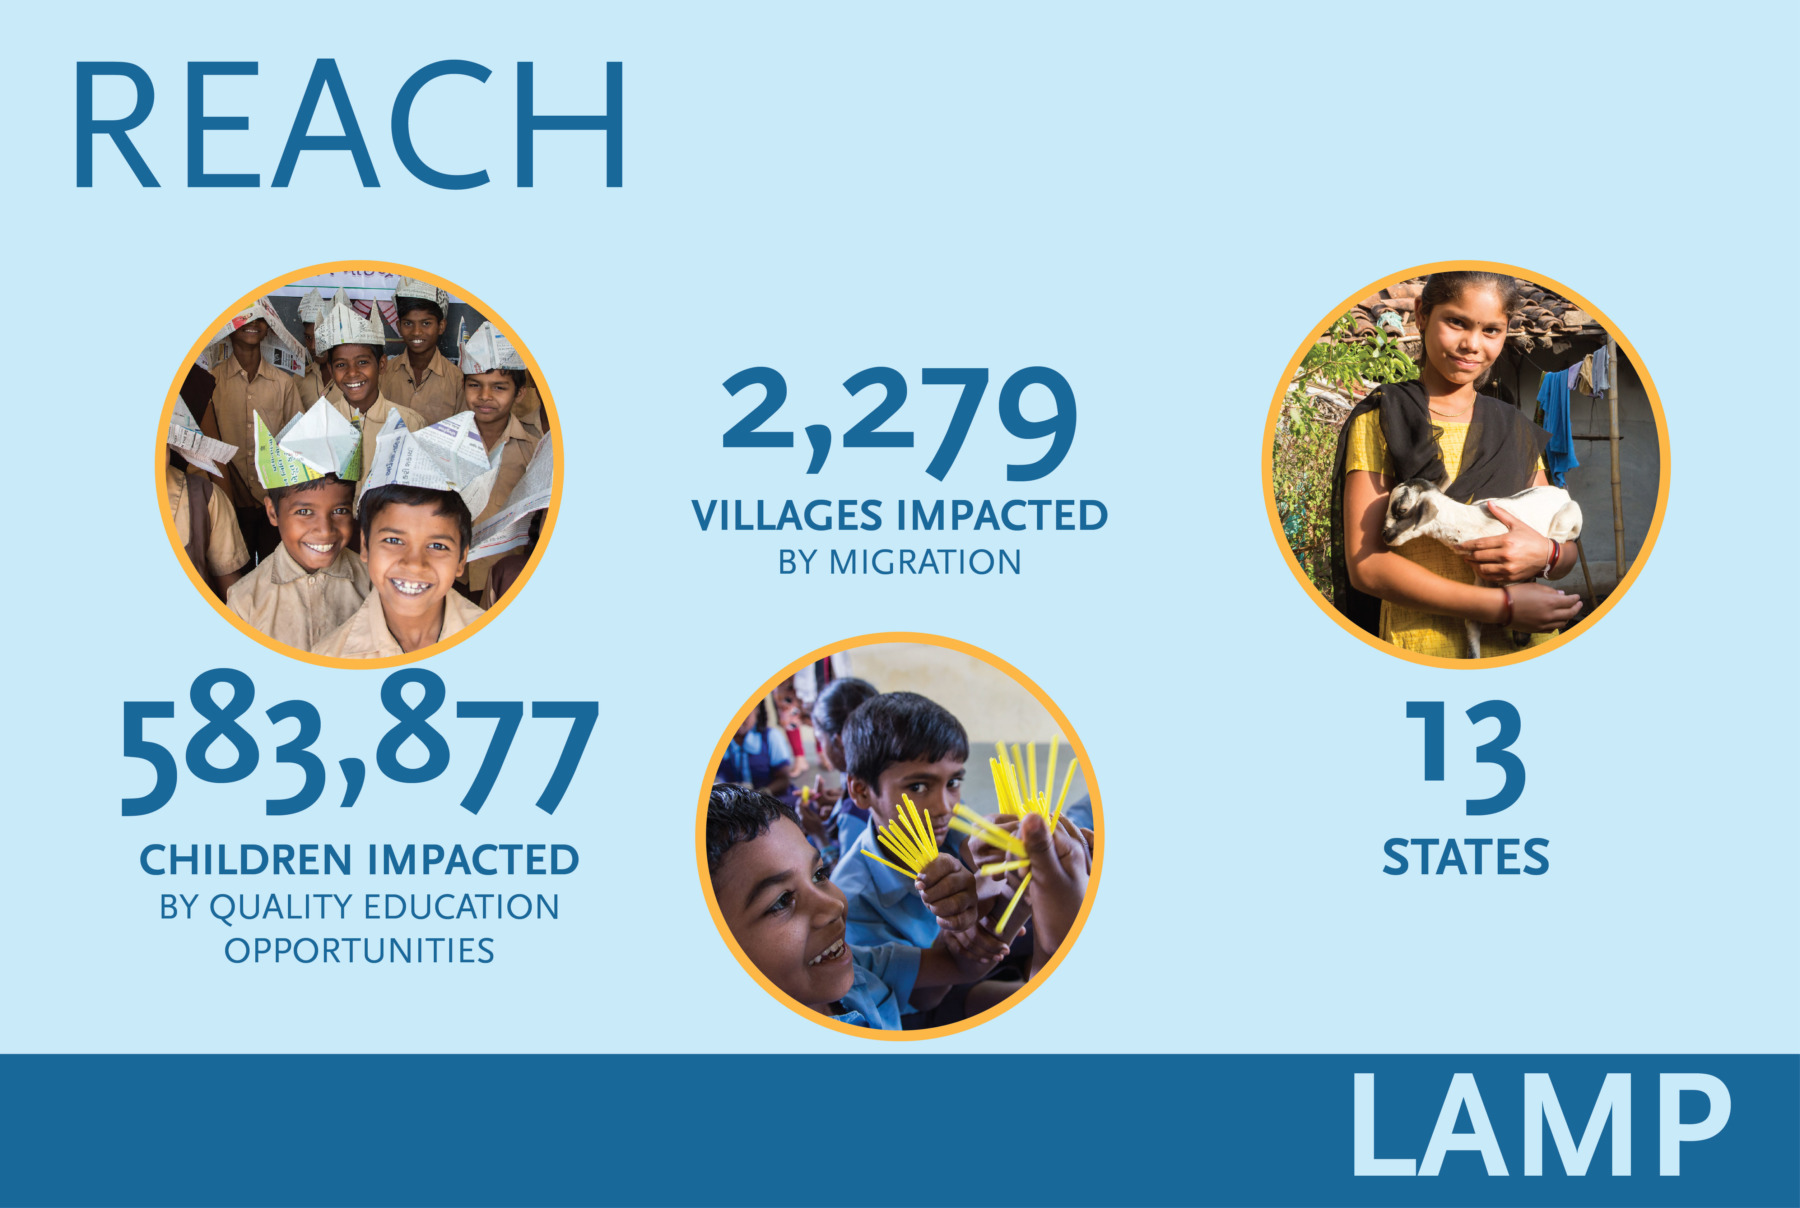 LAMP Reach: 583,877 Children Impacted. 2,279 Villages Impacted. 13 States.